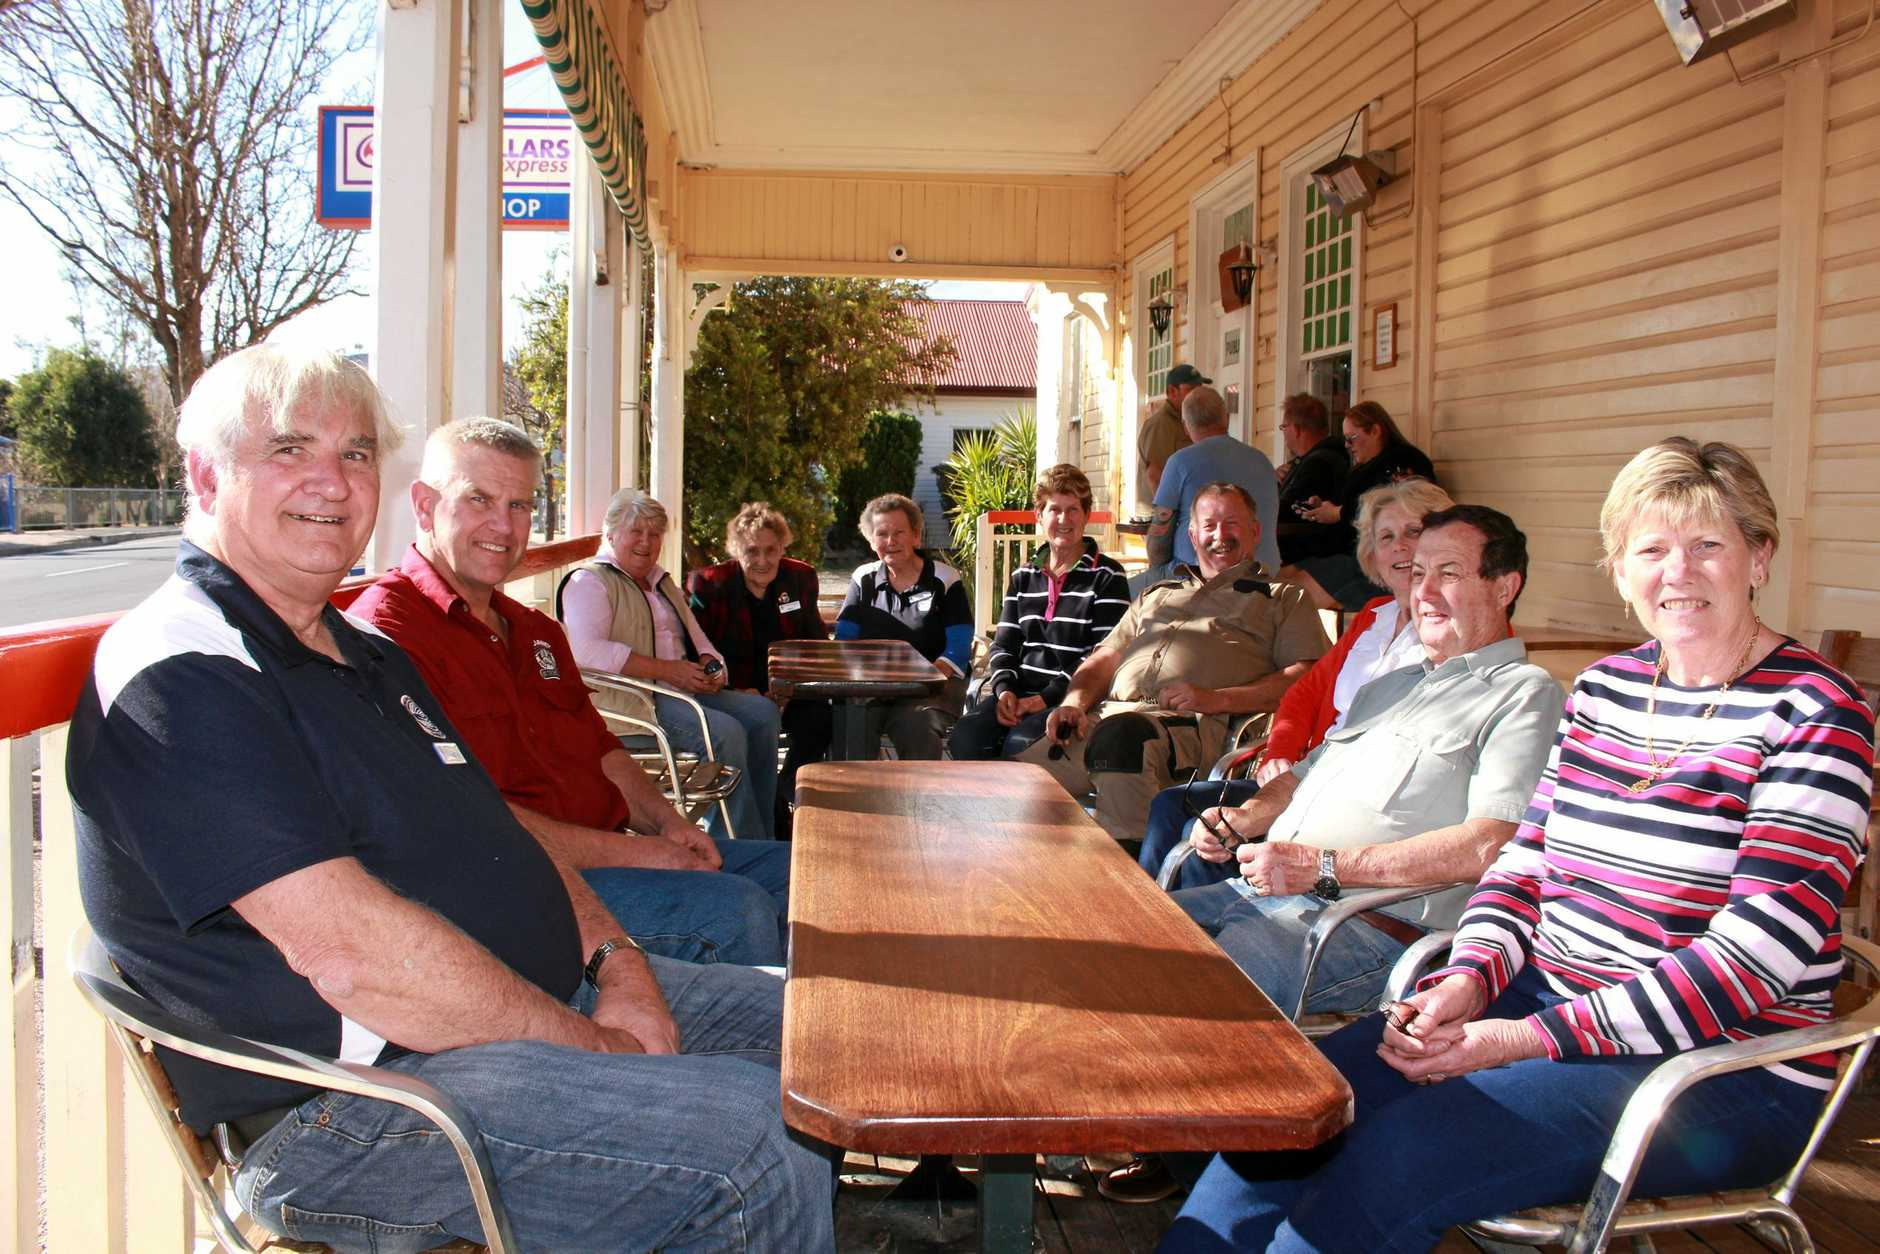 Killarney residents are keen to see their town grow and embrace the tourism opportunities that are coming to their town.